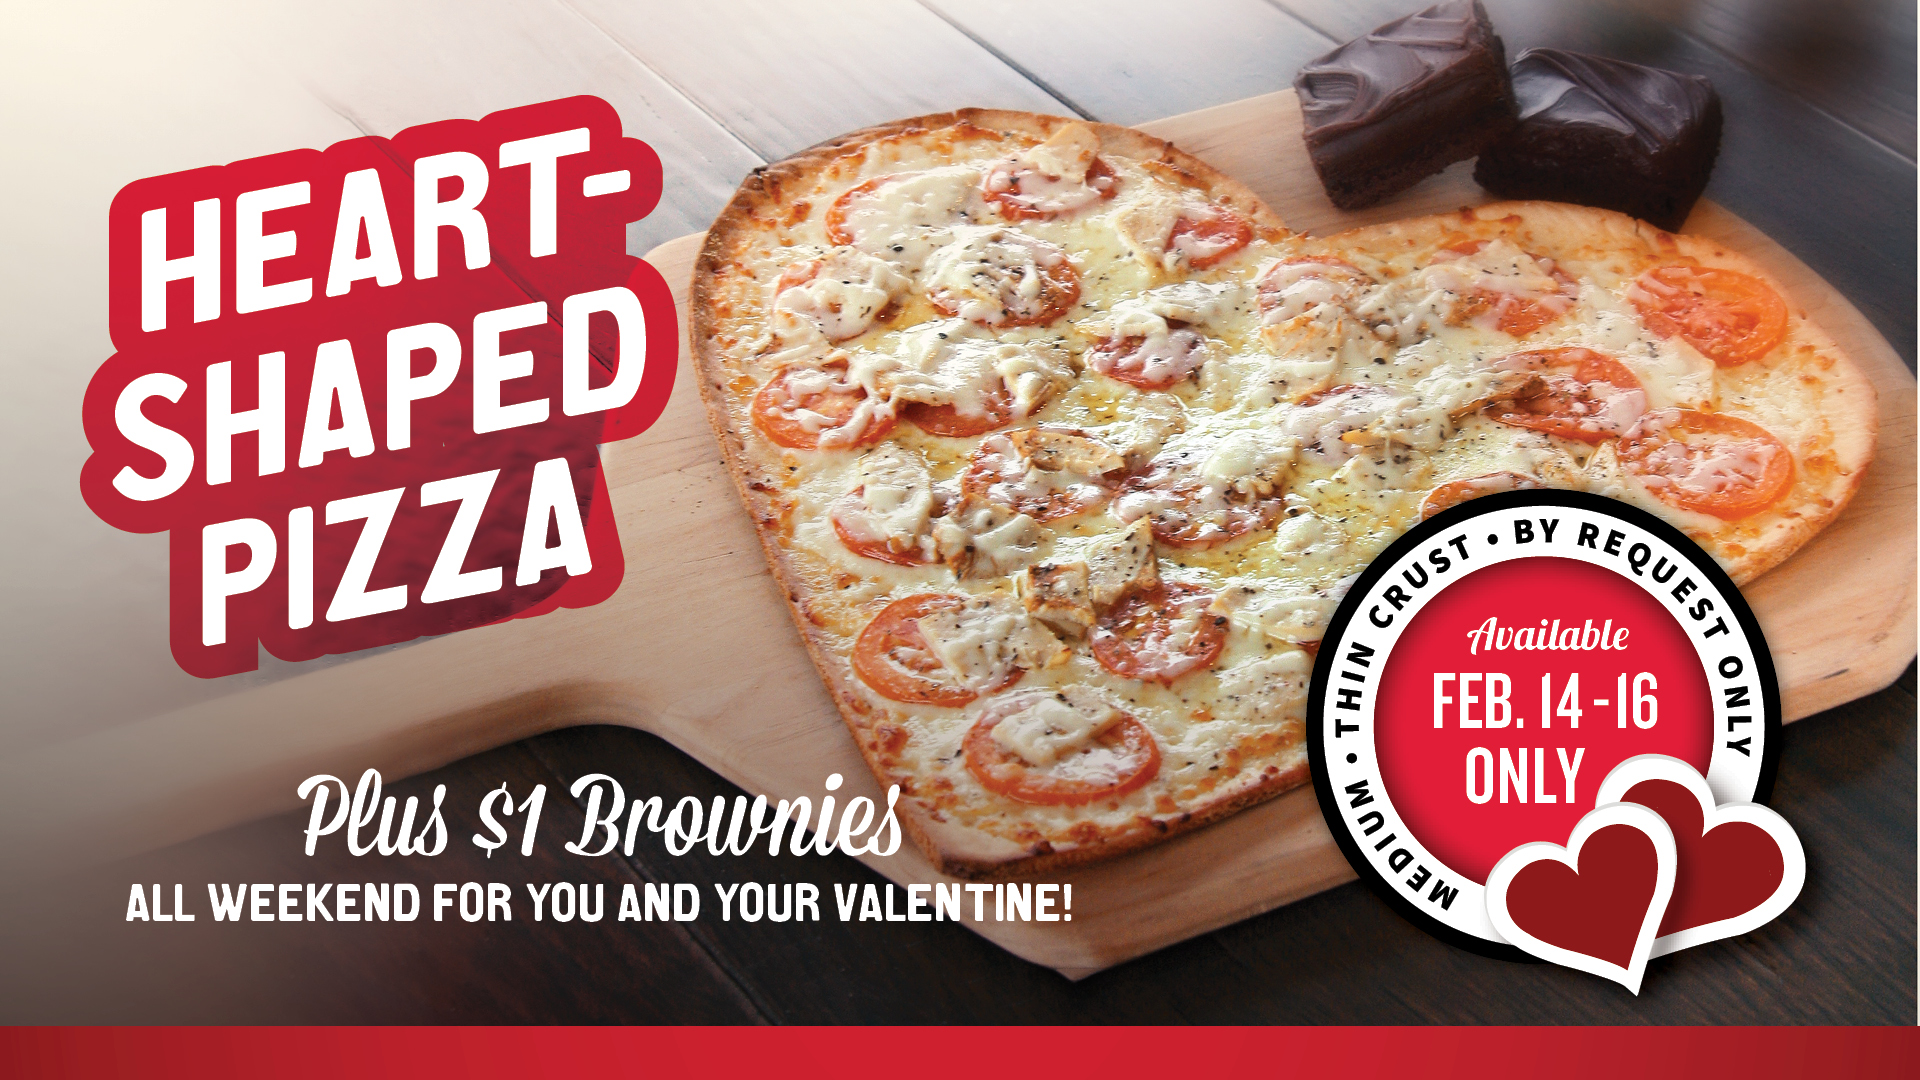 Valentine's Day February 14-16 get heart shaped pizza by request as a Medium Thin Crust only. Dollar brownies all weekend too.